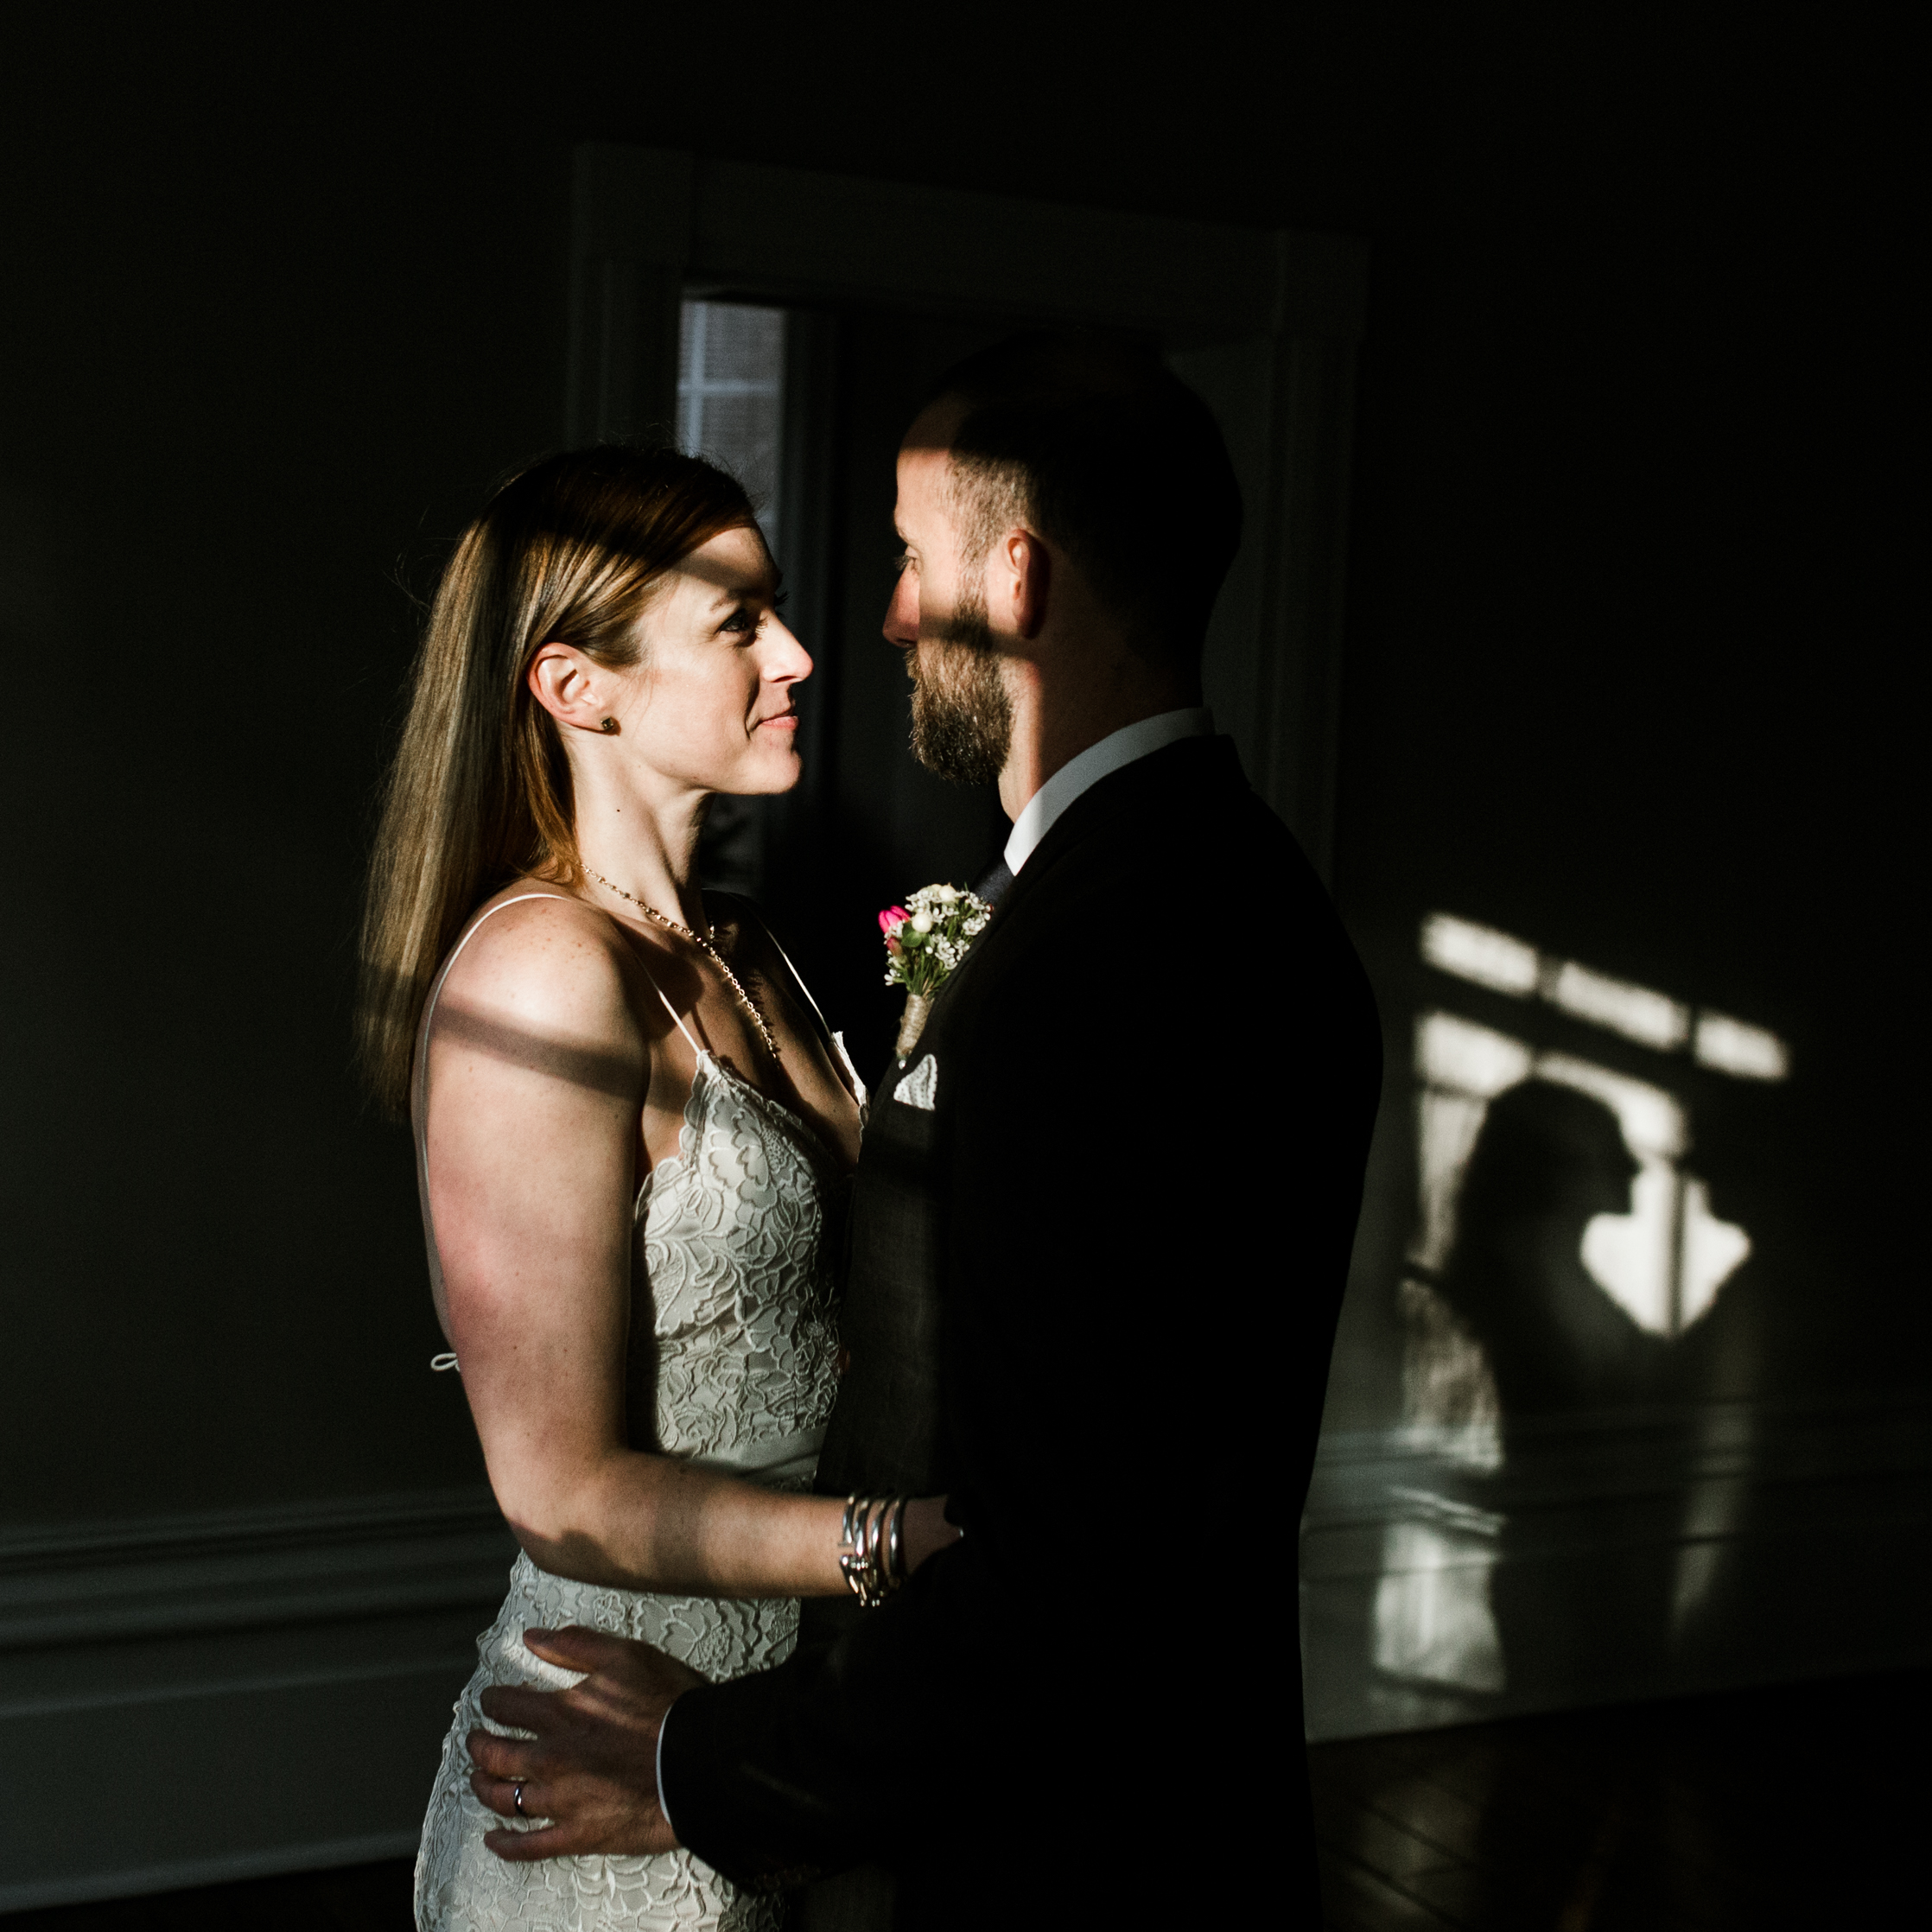 Louisville Courthouse Wedding Louisville Wedding Photographer 2018 Crystal Ludwick Photo Louisville Wedding Photographer Kentucky Wedding Photographer (76 of 76).jpg